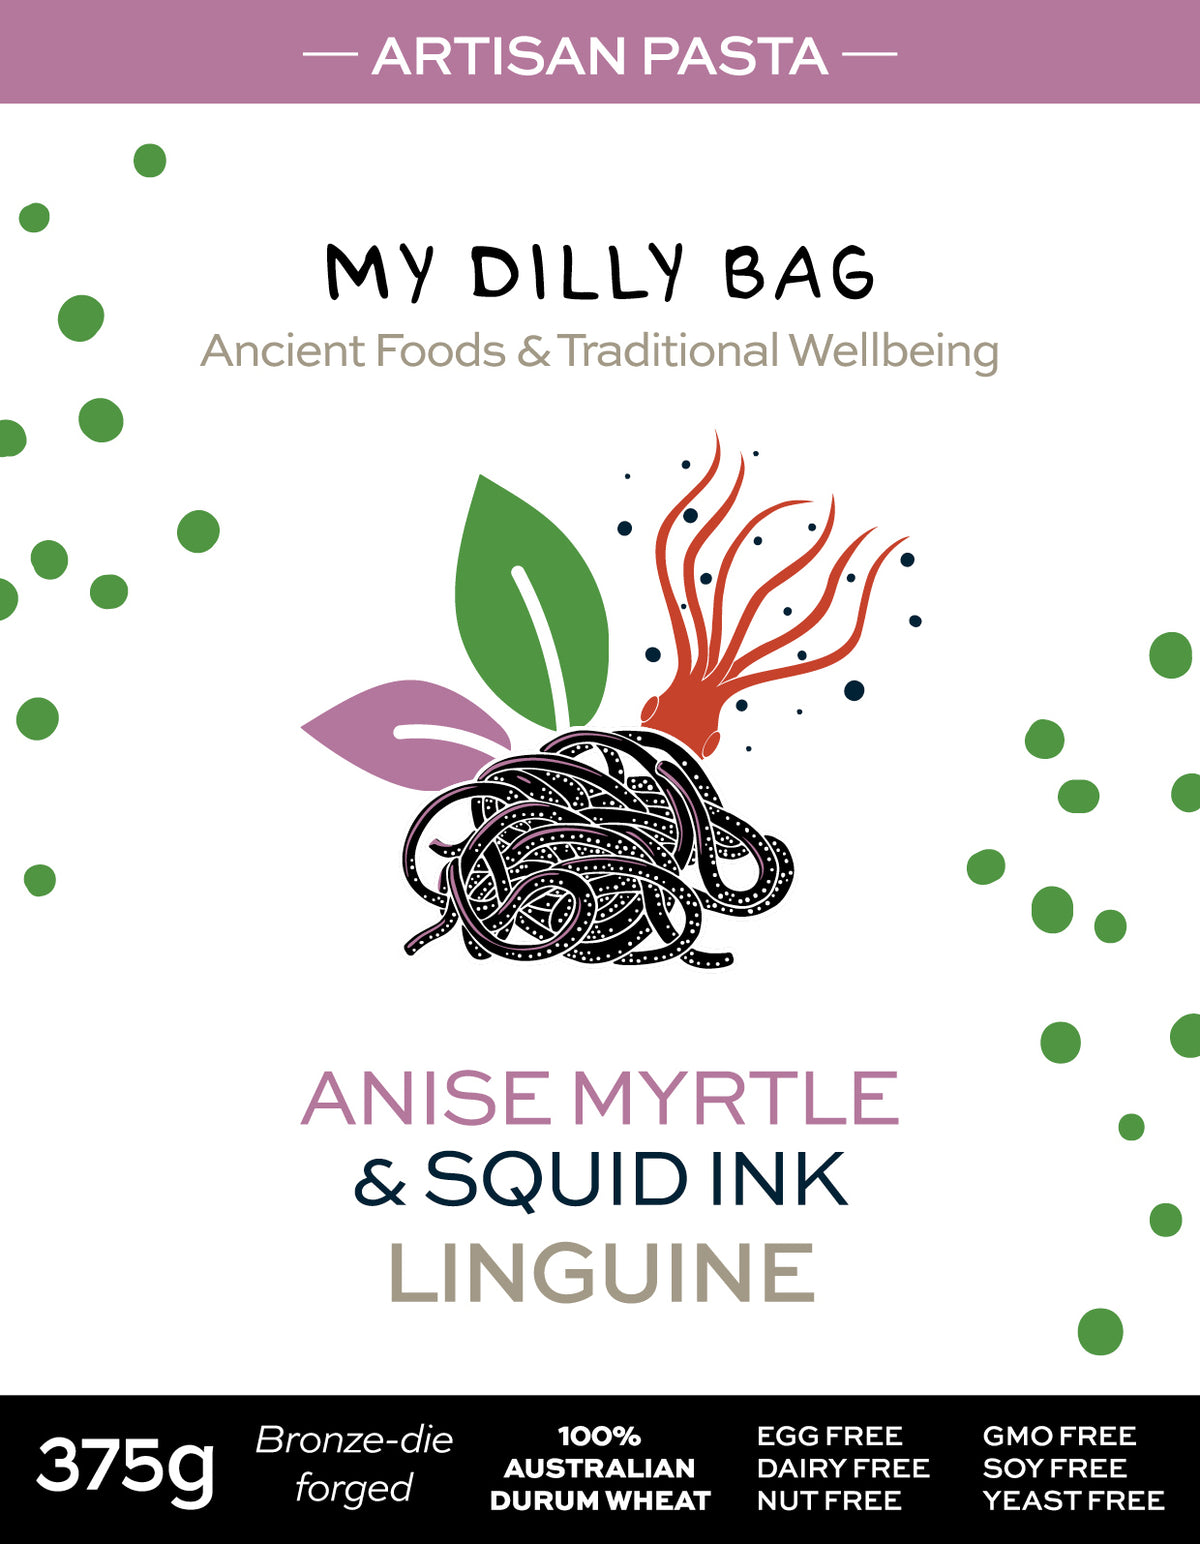 Anise Myrtle & Squid Ink Linguini